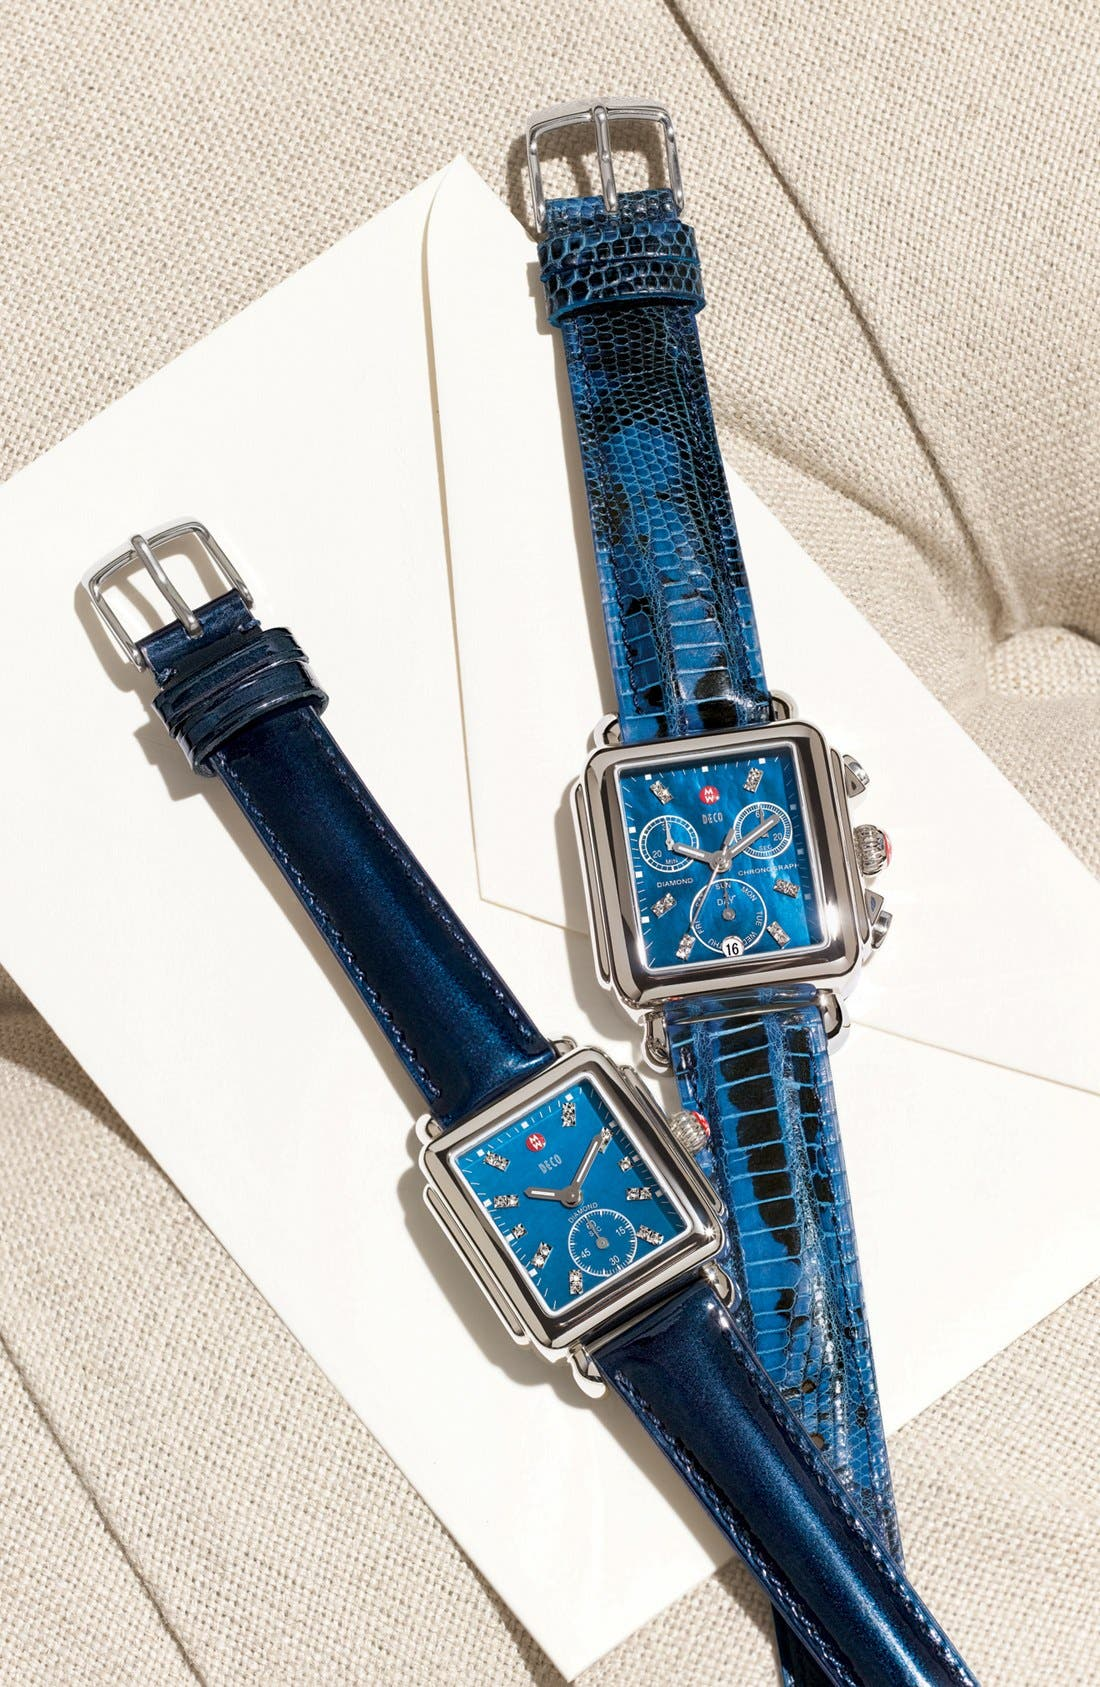 Alternate Image 1 Selected - MICHELE 'Deco 16' Diamond Dial Watch Case & 16mm Navy Patent Leather Strap